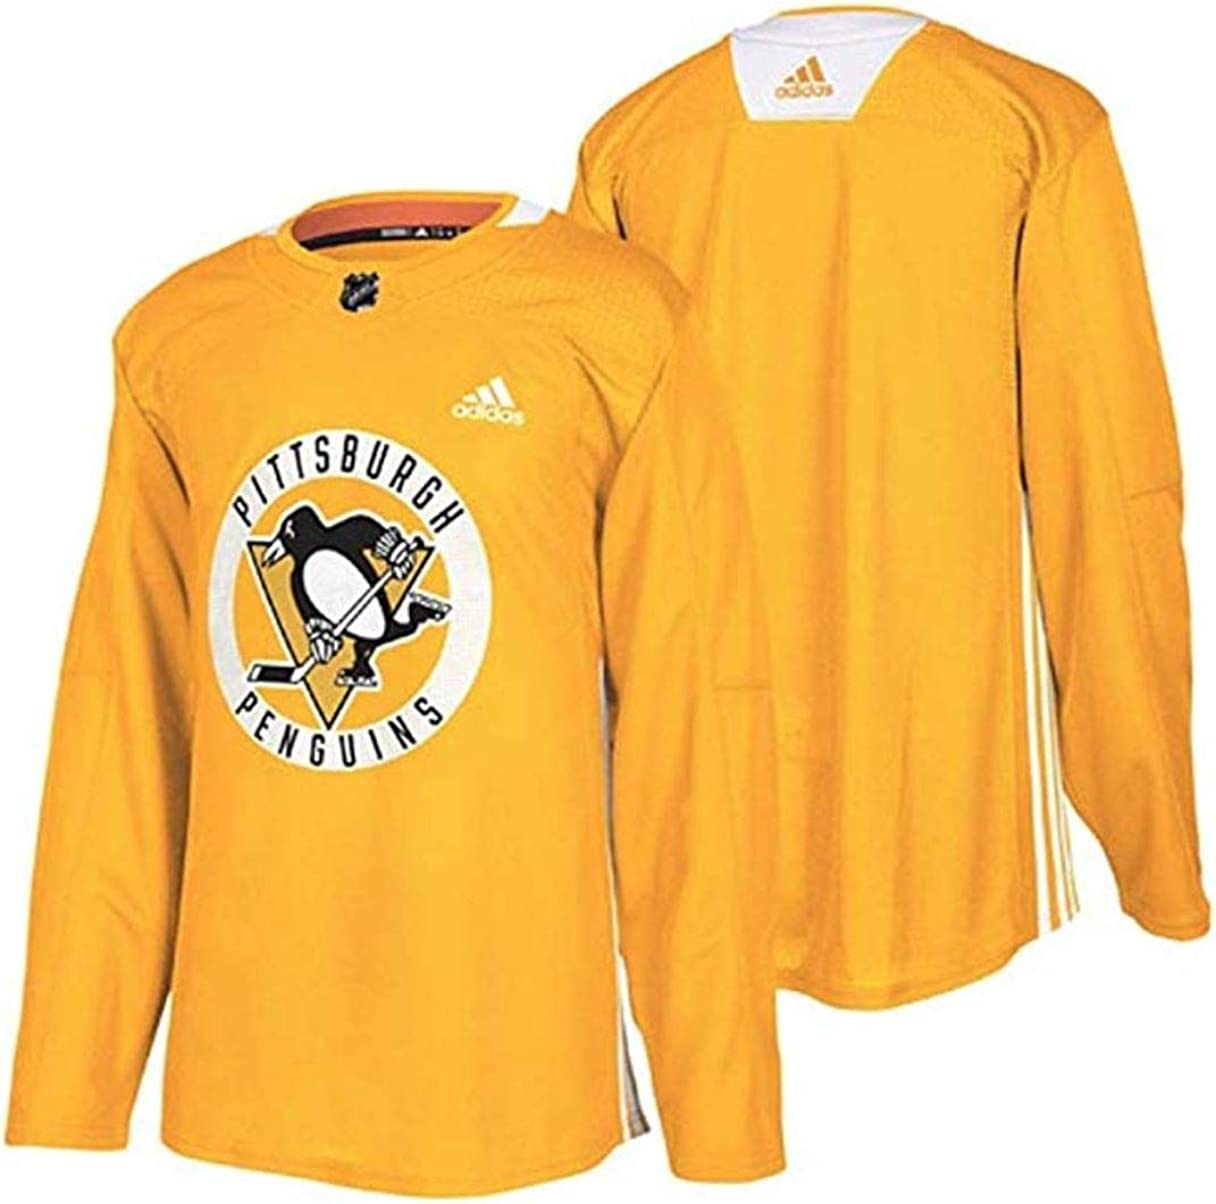 pittsburgh penguins road jersey